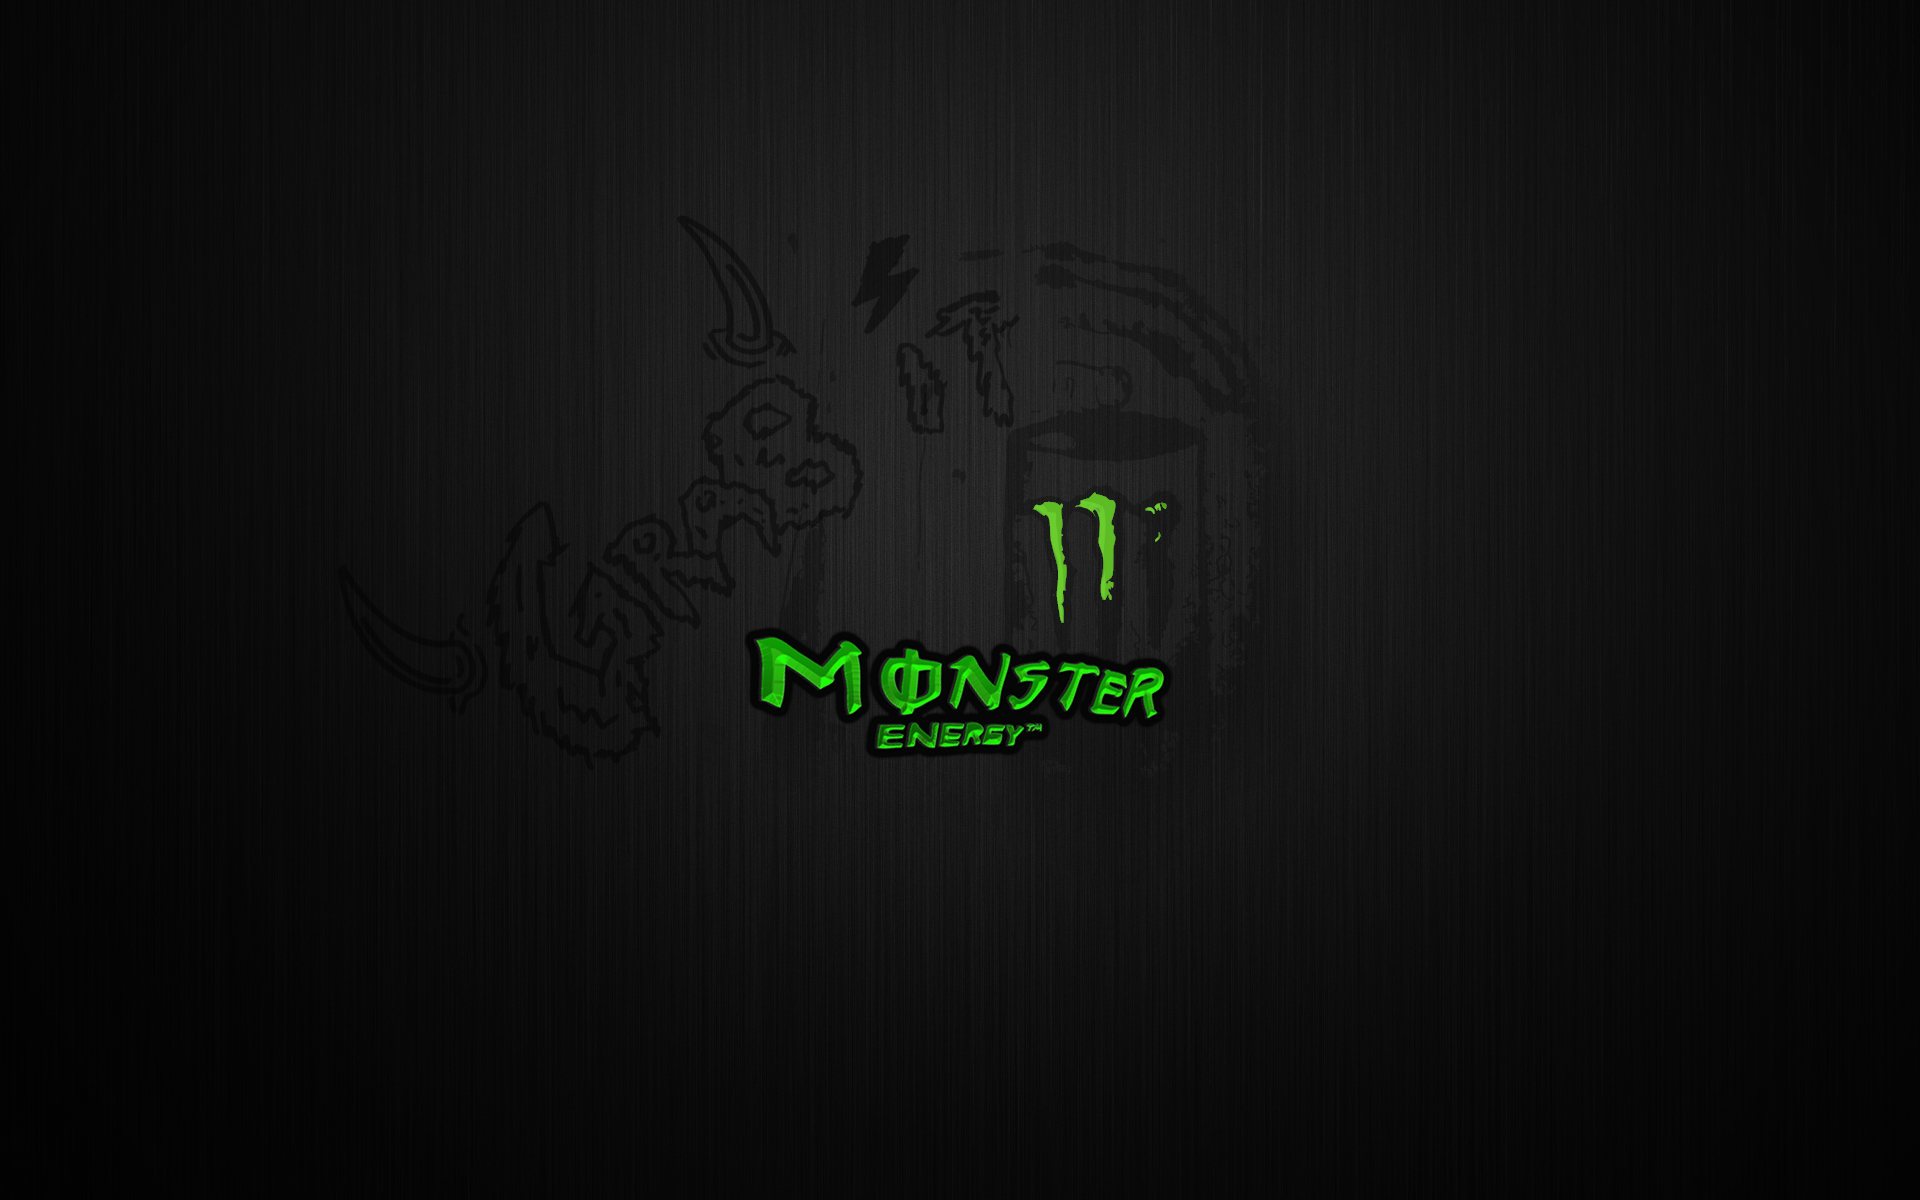 Monster Energy Wallpaper by pname 1920x1200